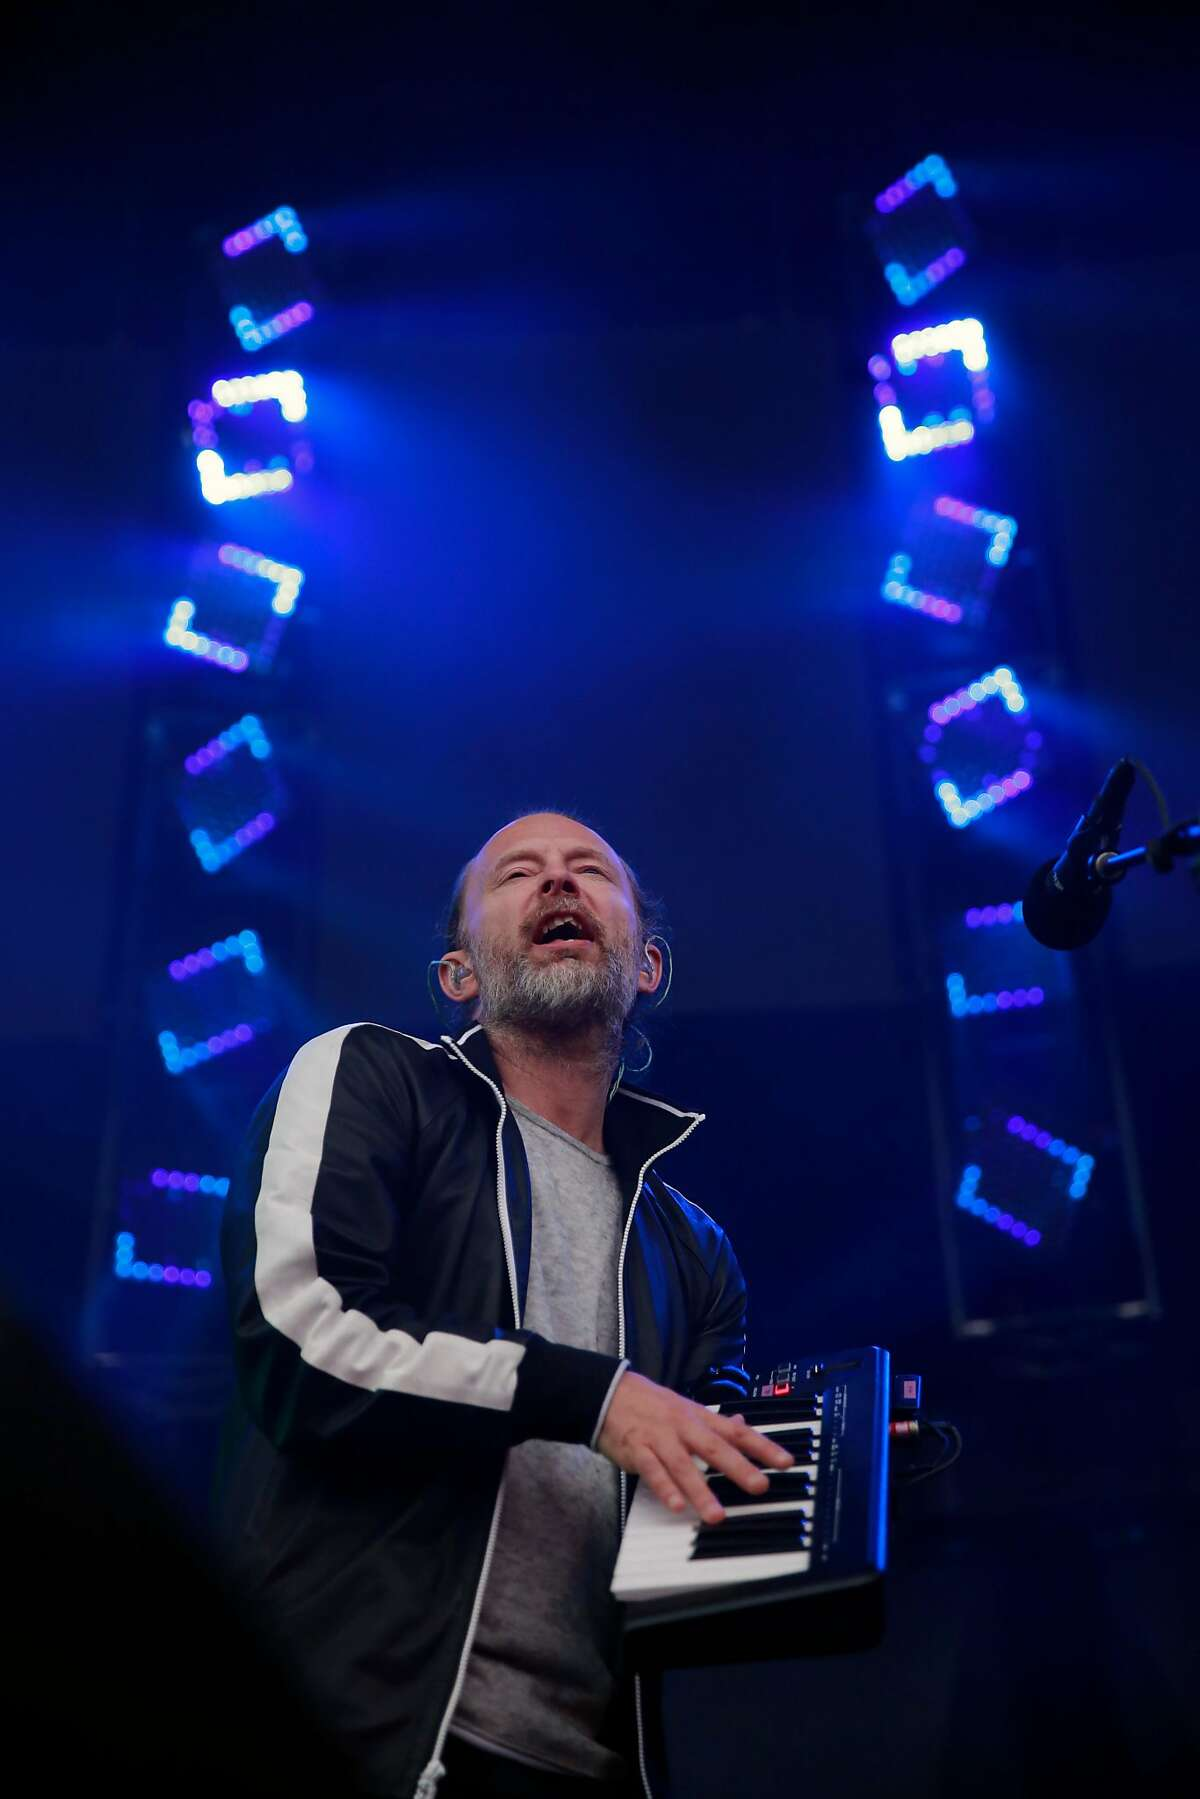 Thom Yorke of Radiohead as they play the Lands End stage during day two of the Outside Lands Music Festival in Golden Gate Park in San Francisco, California, on Sat. Aug. 6, 2016.